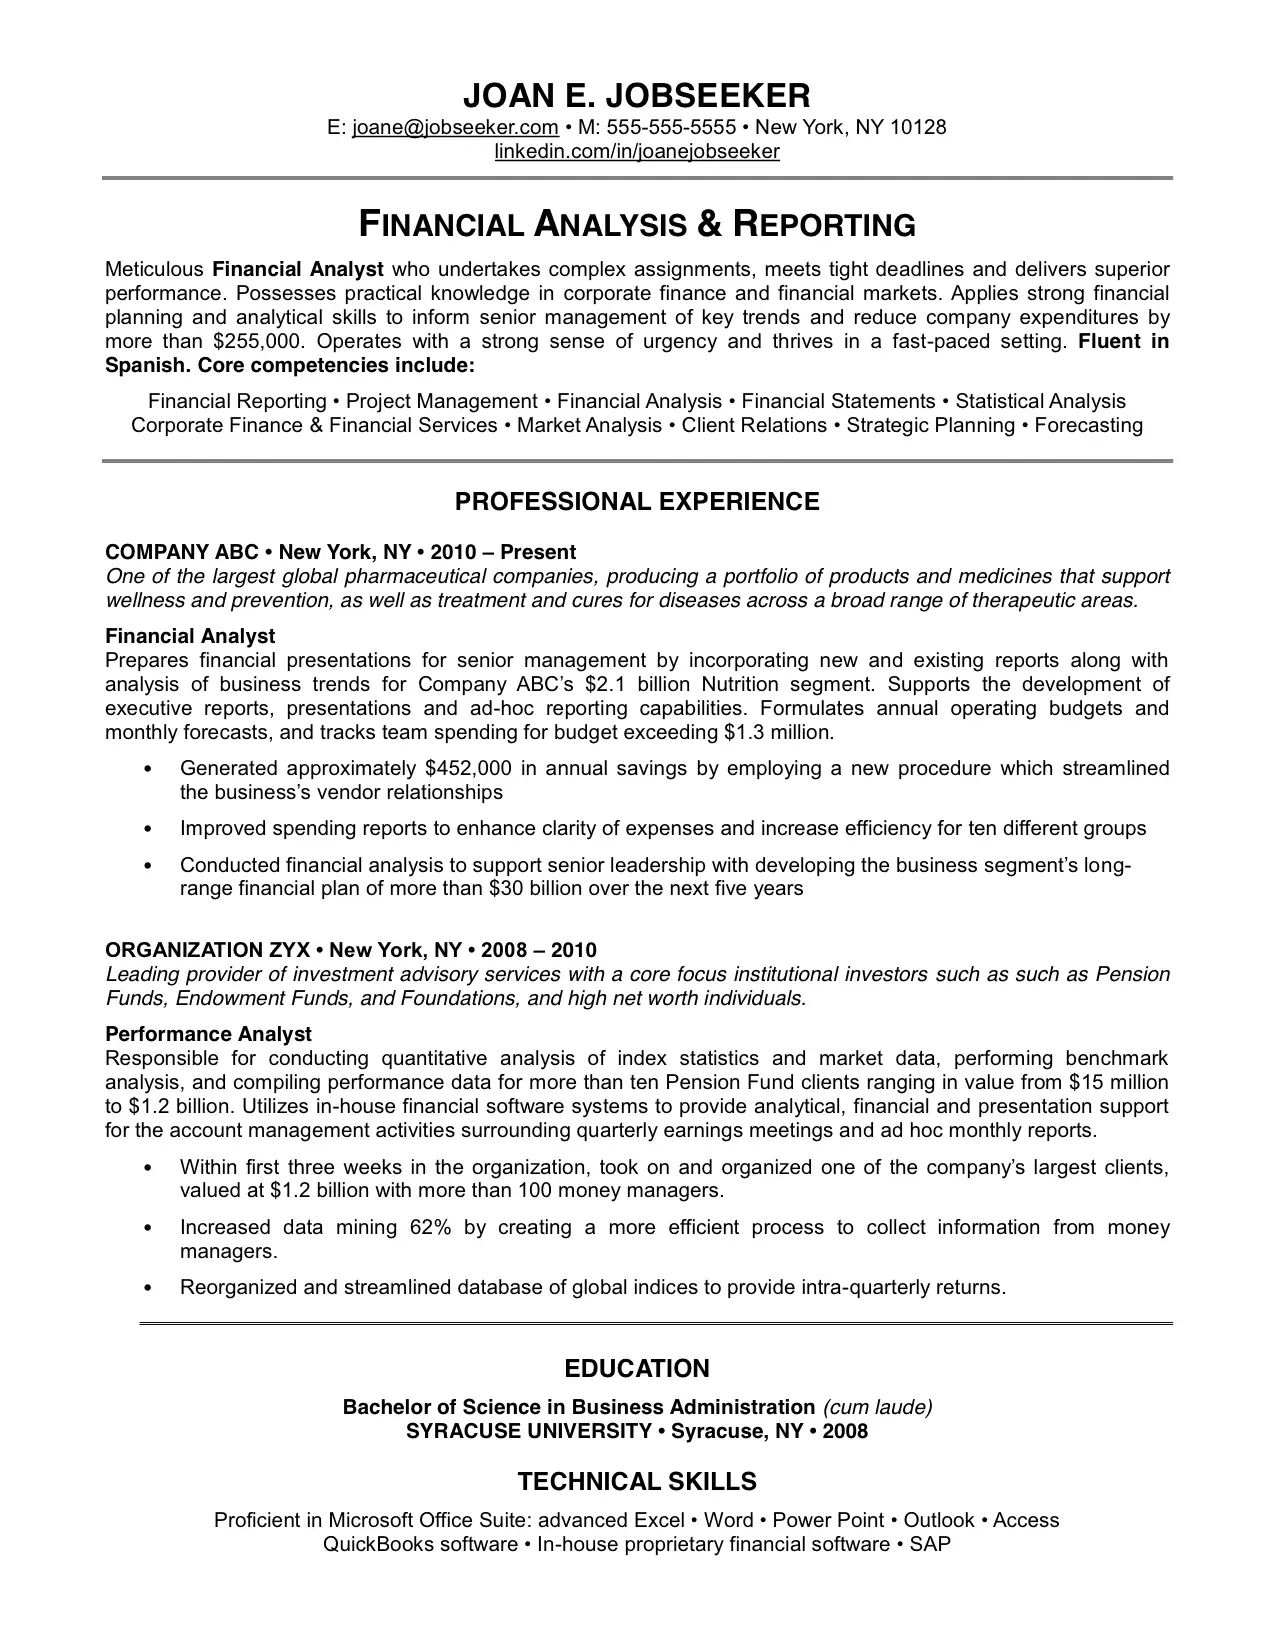 is having a common resume template good